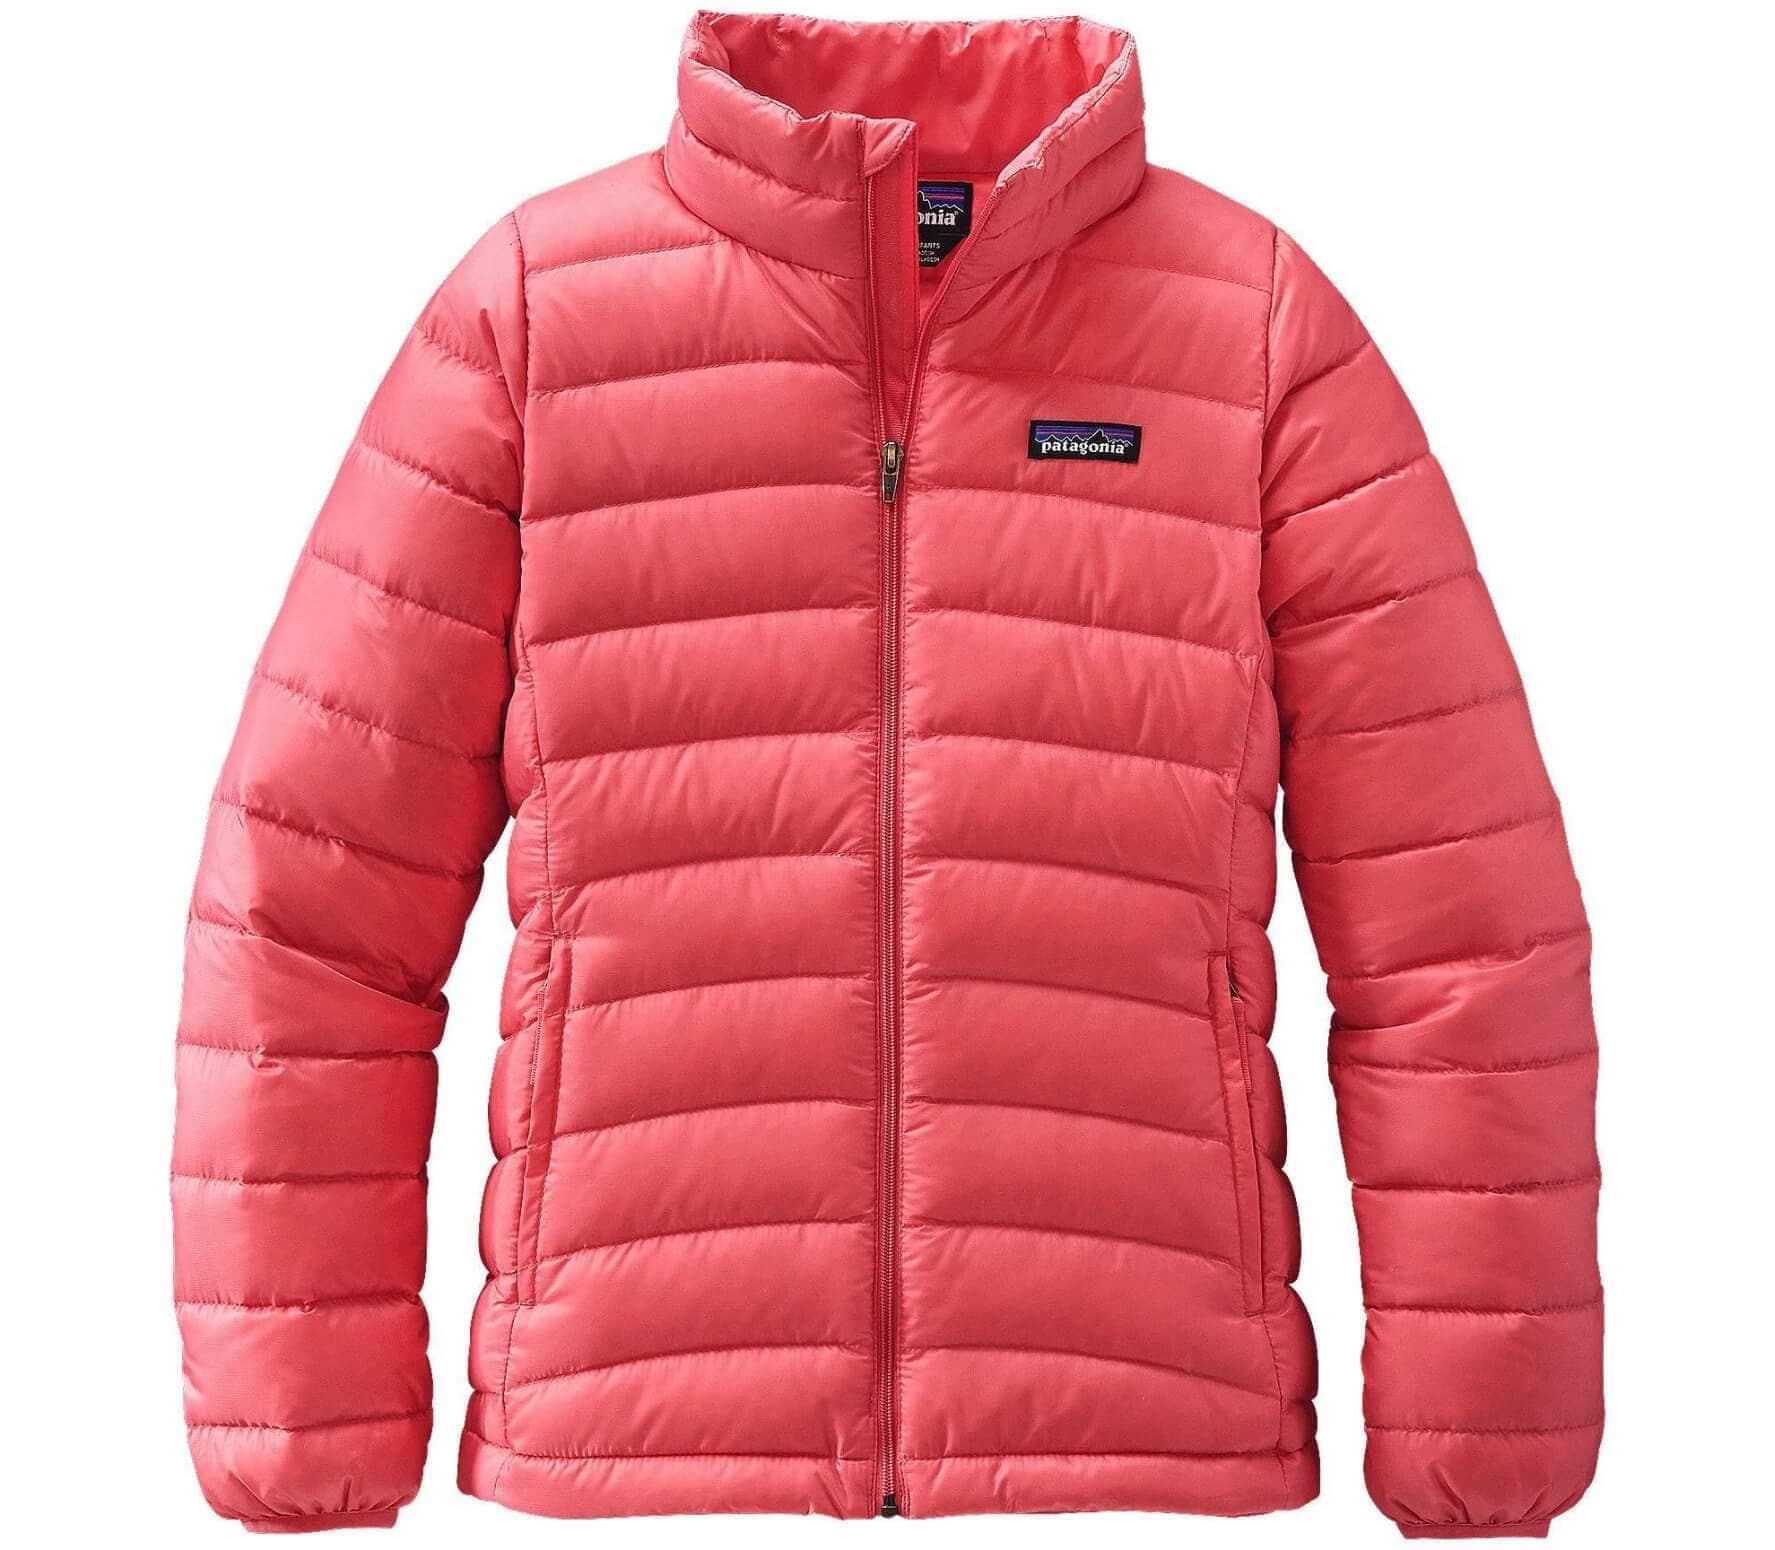 Patagonia Sweater Junior Daunenjacke Bambino